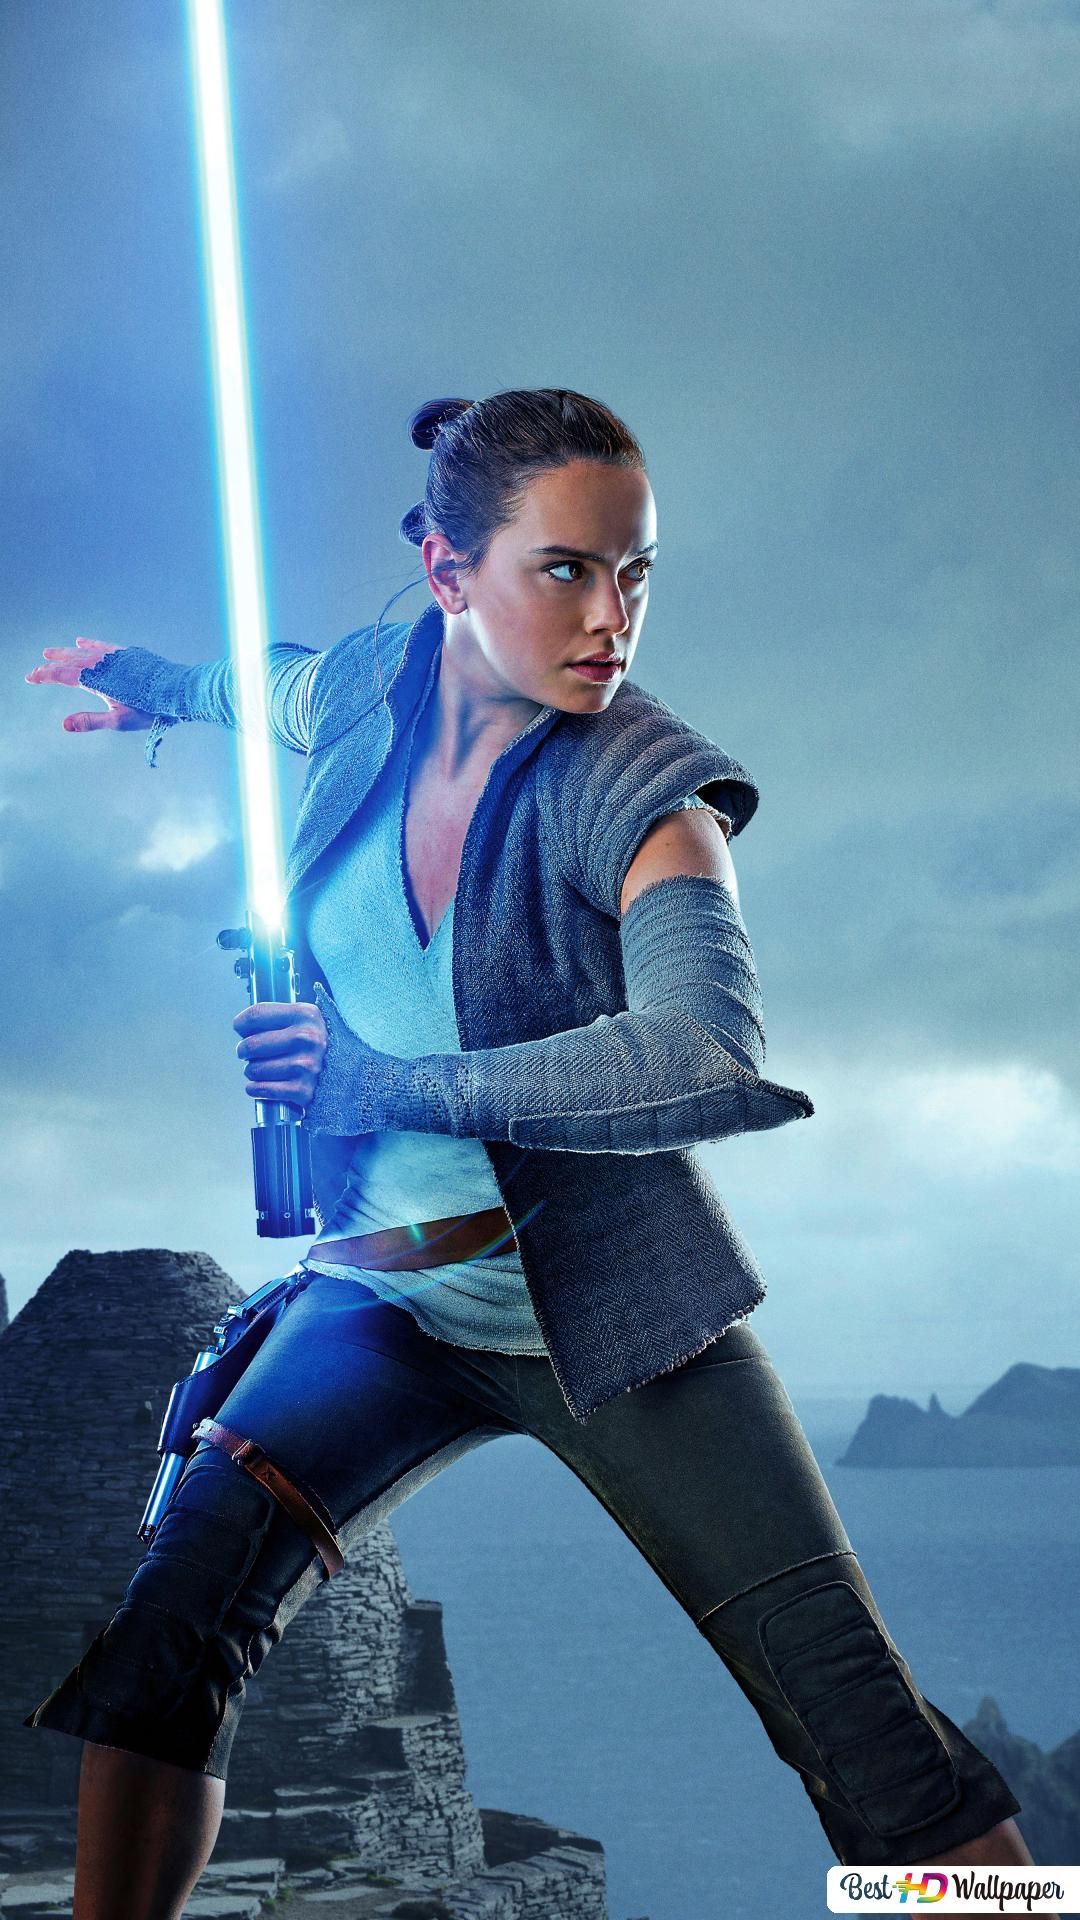 Star Wars The Last Jedi Movie Rey With Lightsaber Hd Wallpaper Download